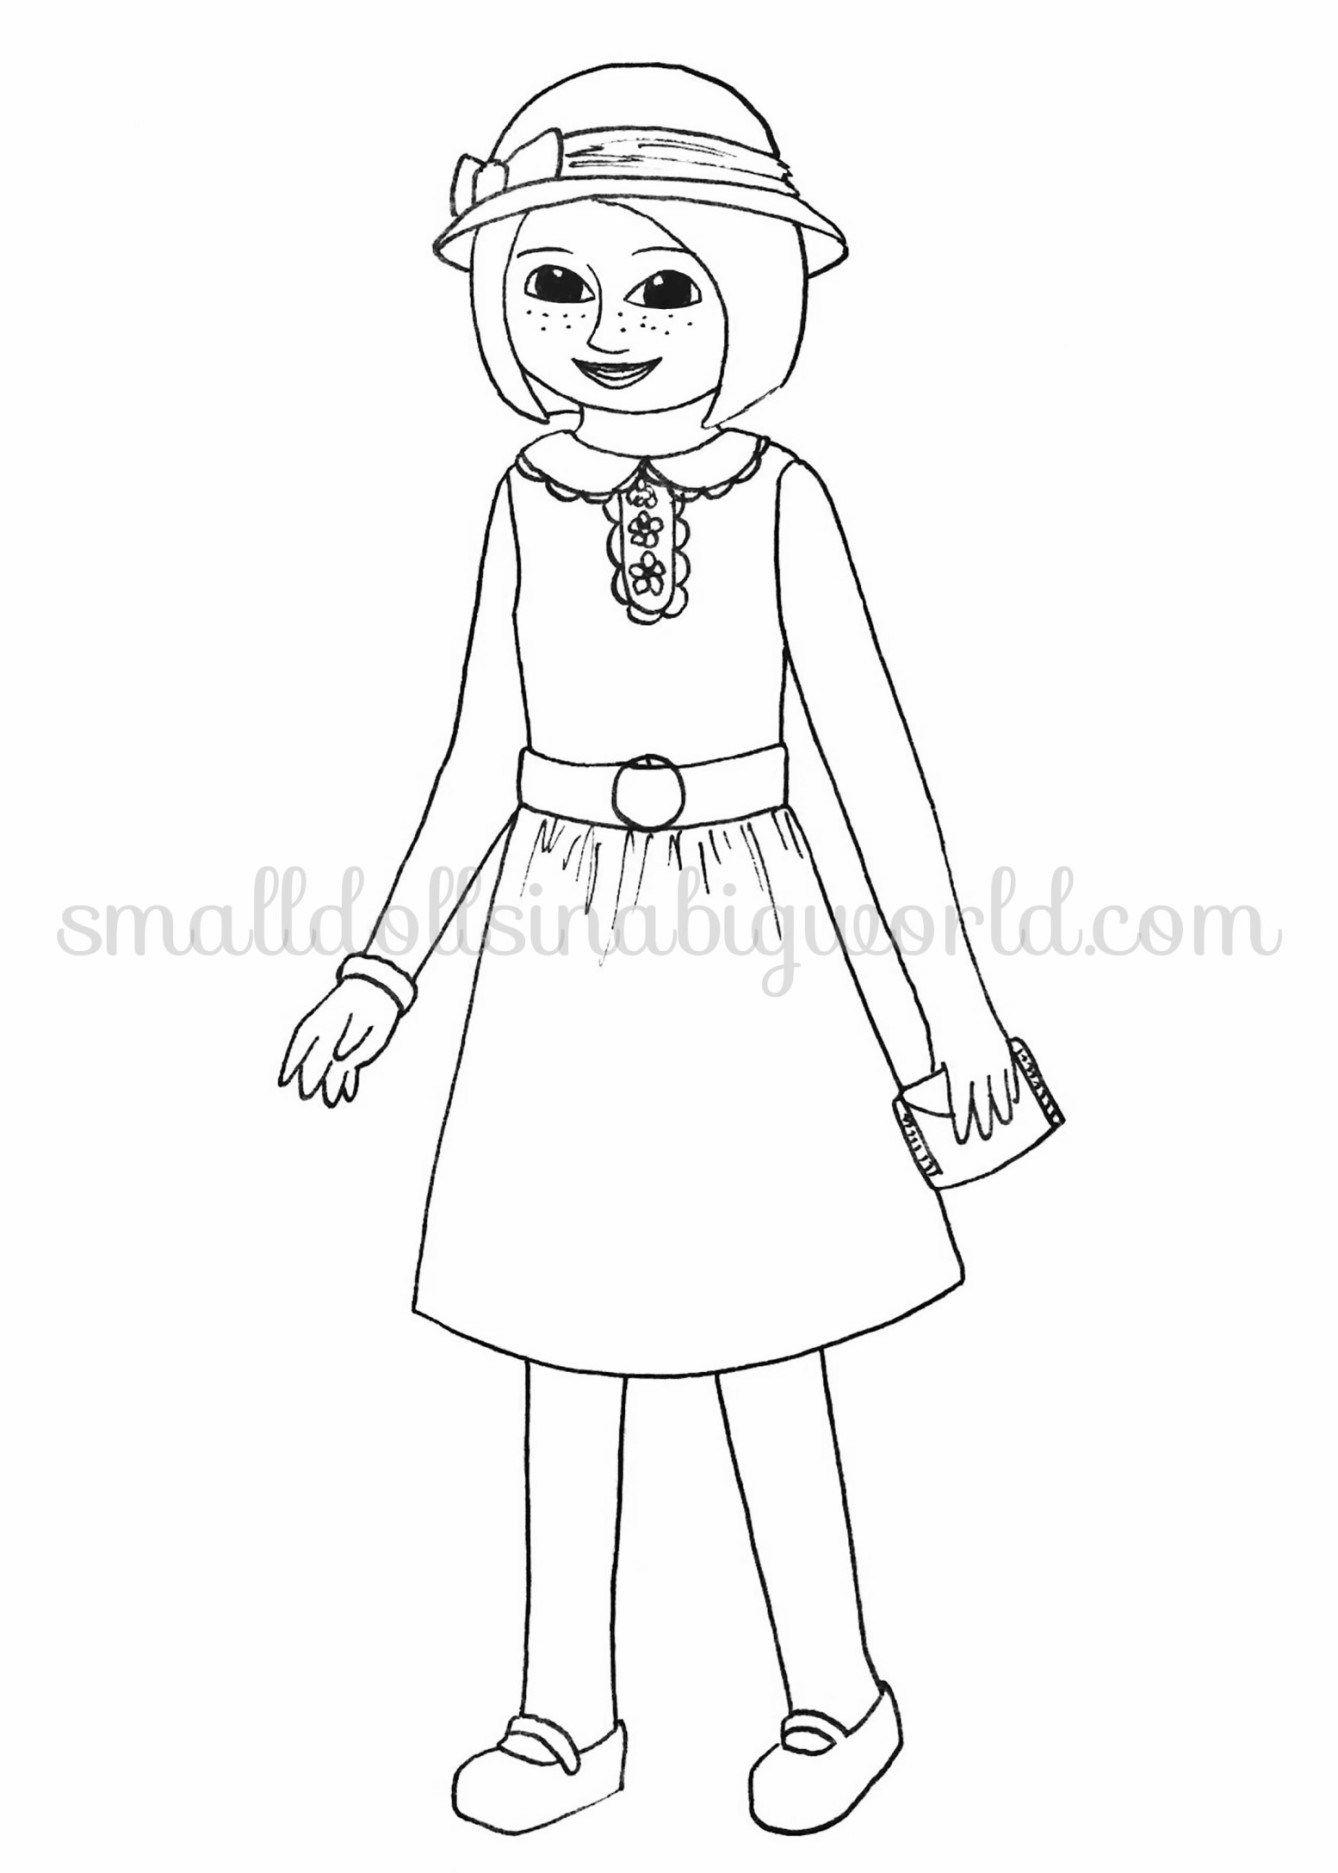 American Girl Coloring Pages Kit Collection American Girl Doll Coloring Pages Girl Dolls